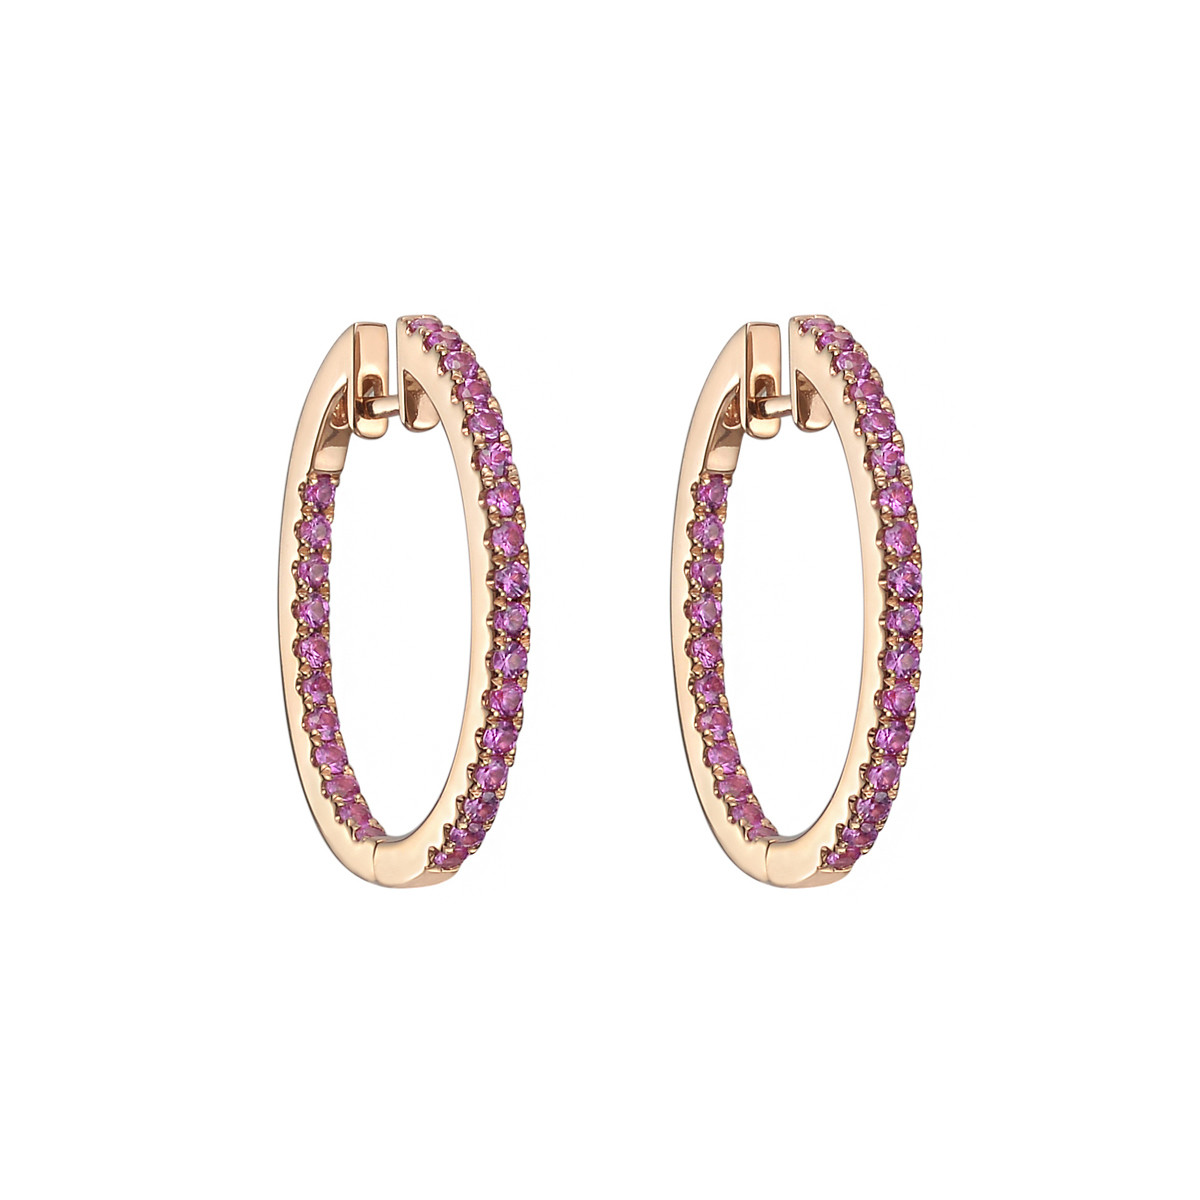 Small Pink Sapphire Hoop Earrings